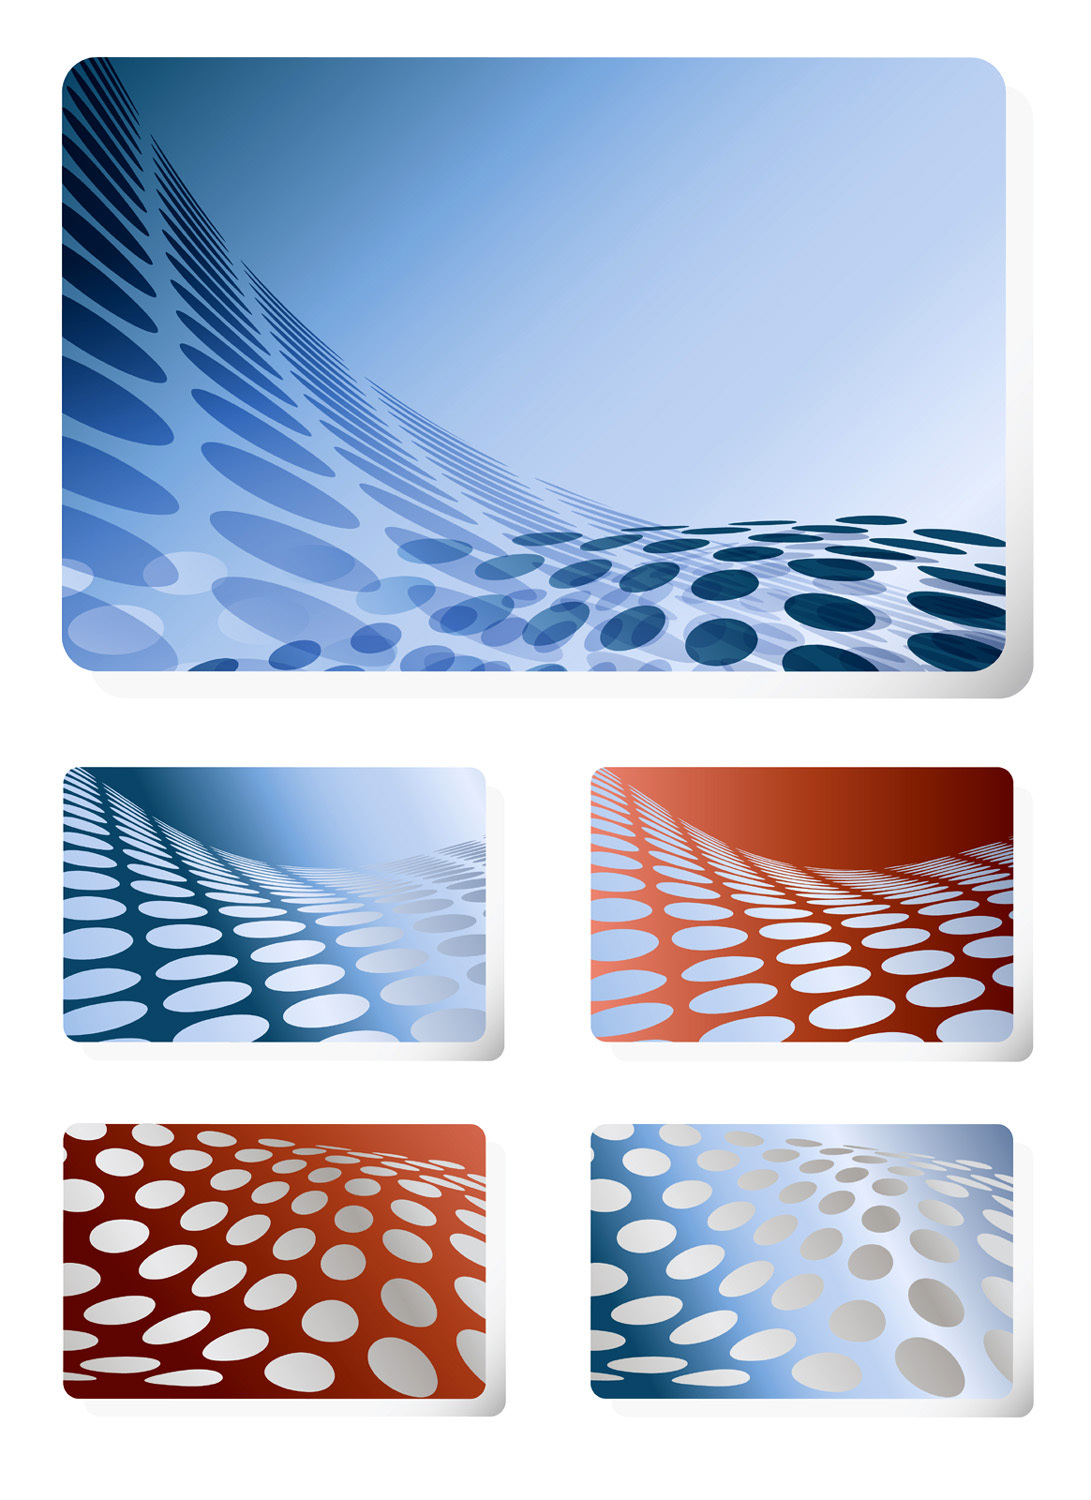 Primary image for *Dot Wave Wallpaper* Digital Art 5 JPEG Images Download